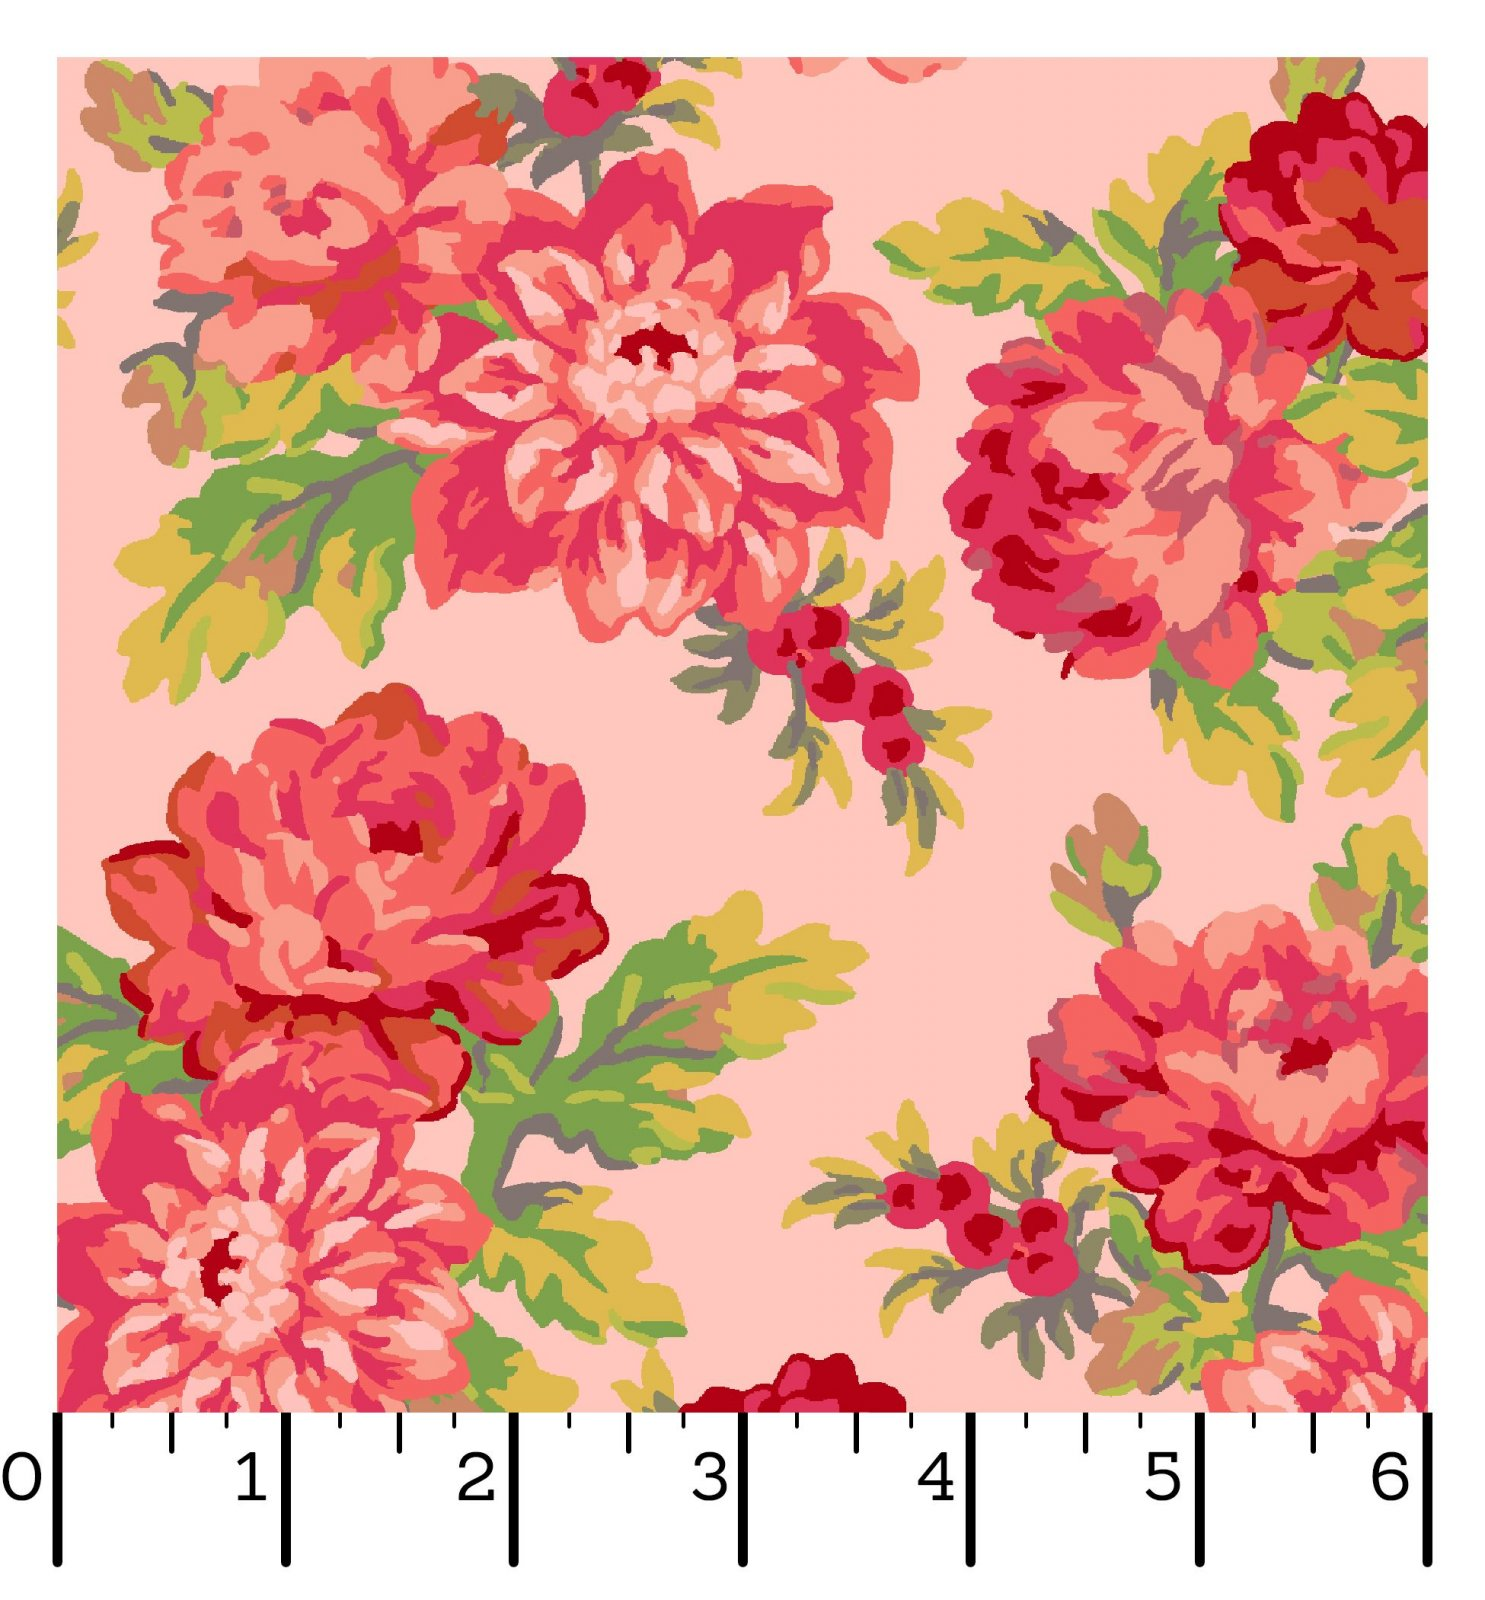 EESC-10010 P - SWEET BEGINNINGS BY JERA BRANDVIG FOCAL FLORAL PINK - ARRIVING IN JUNE 2021